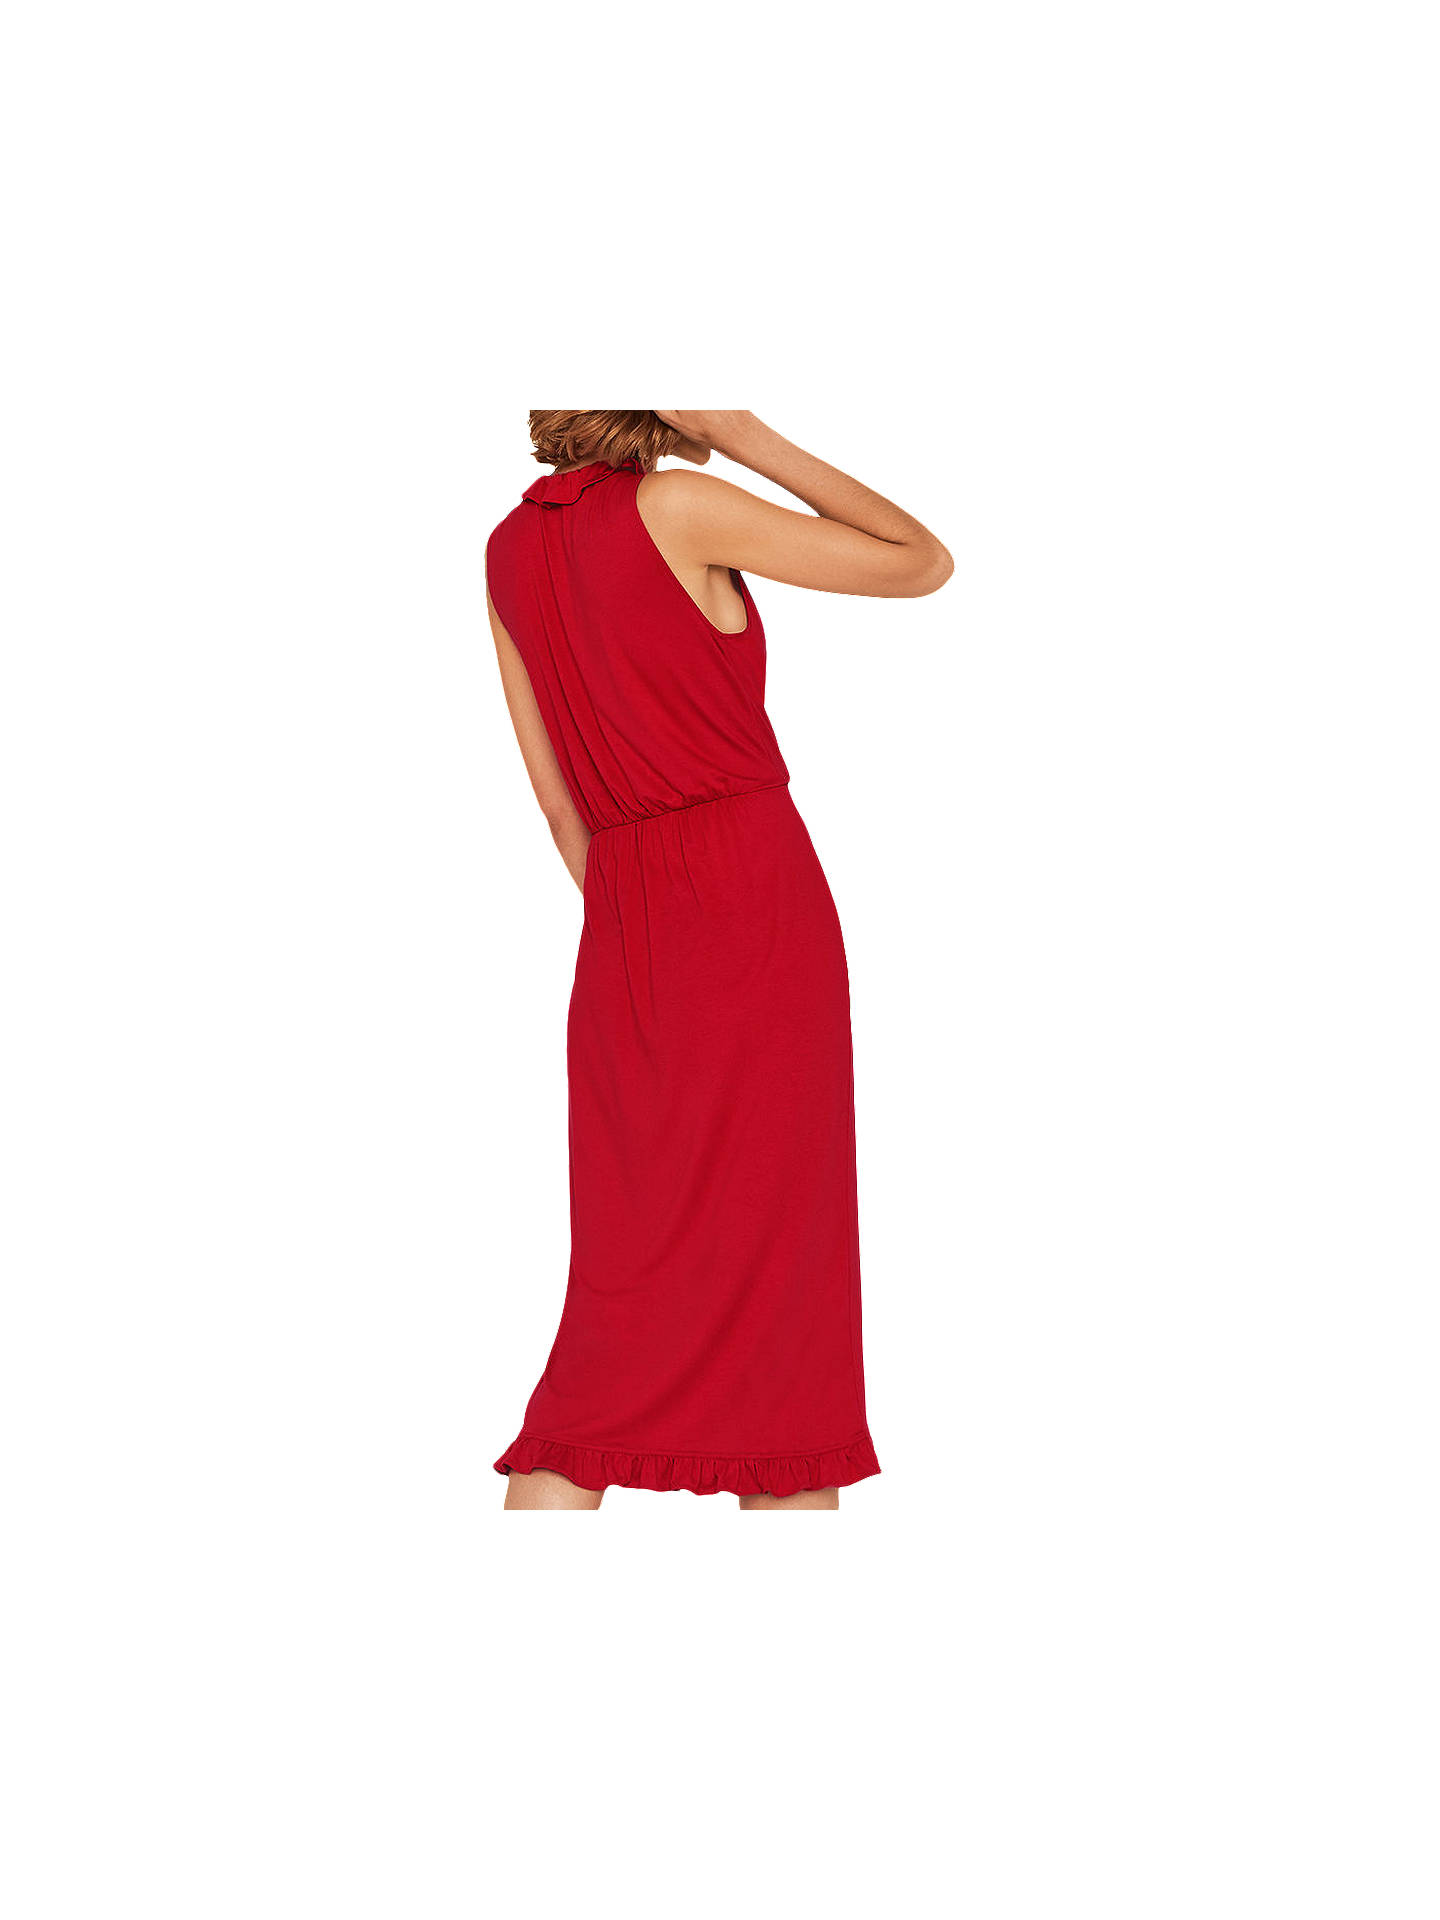 a33f0367df5b ... Buy Oasis Frill Wrap Midi Dress, Mid Red, S Online at johnlewis.com ...